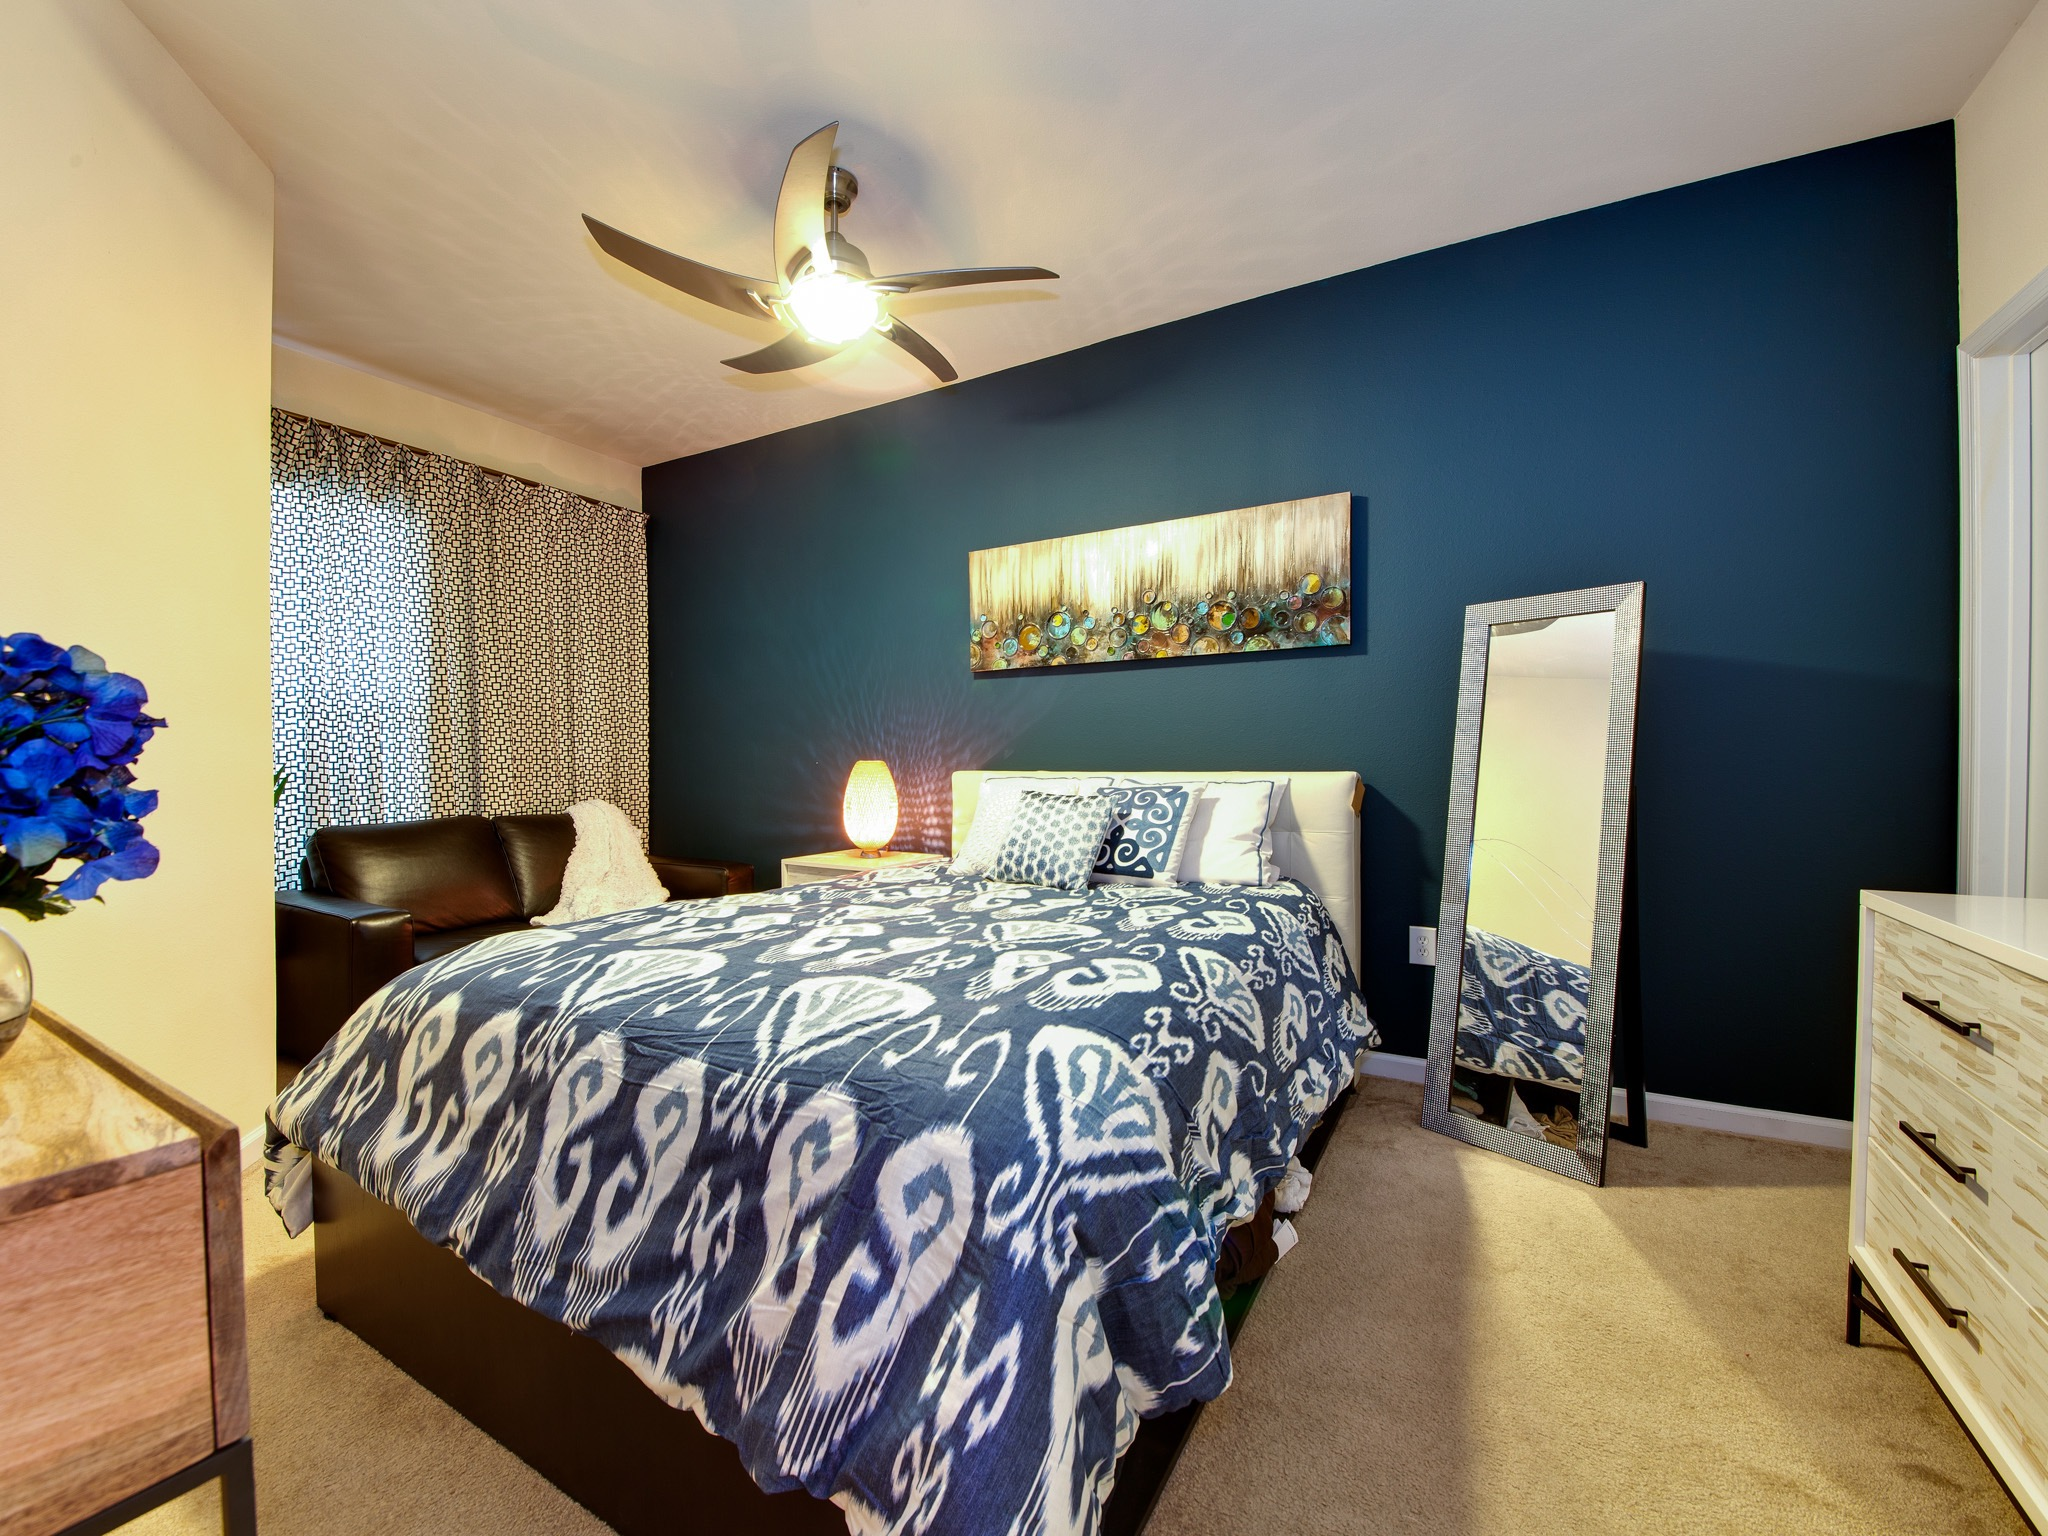 20 lovely bedroom paint and color ideas 16569 house decoration ideas. Black Bedroom Furniture Sets. Home Design Ideas